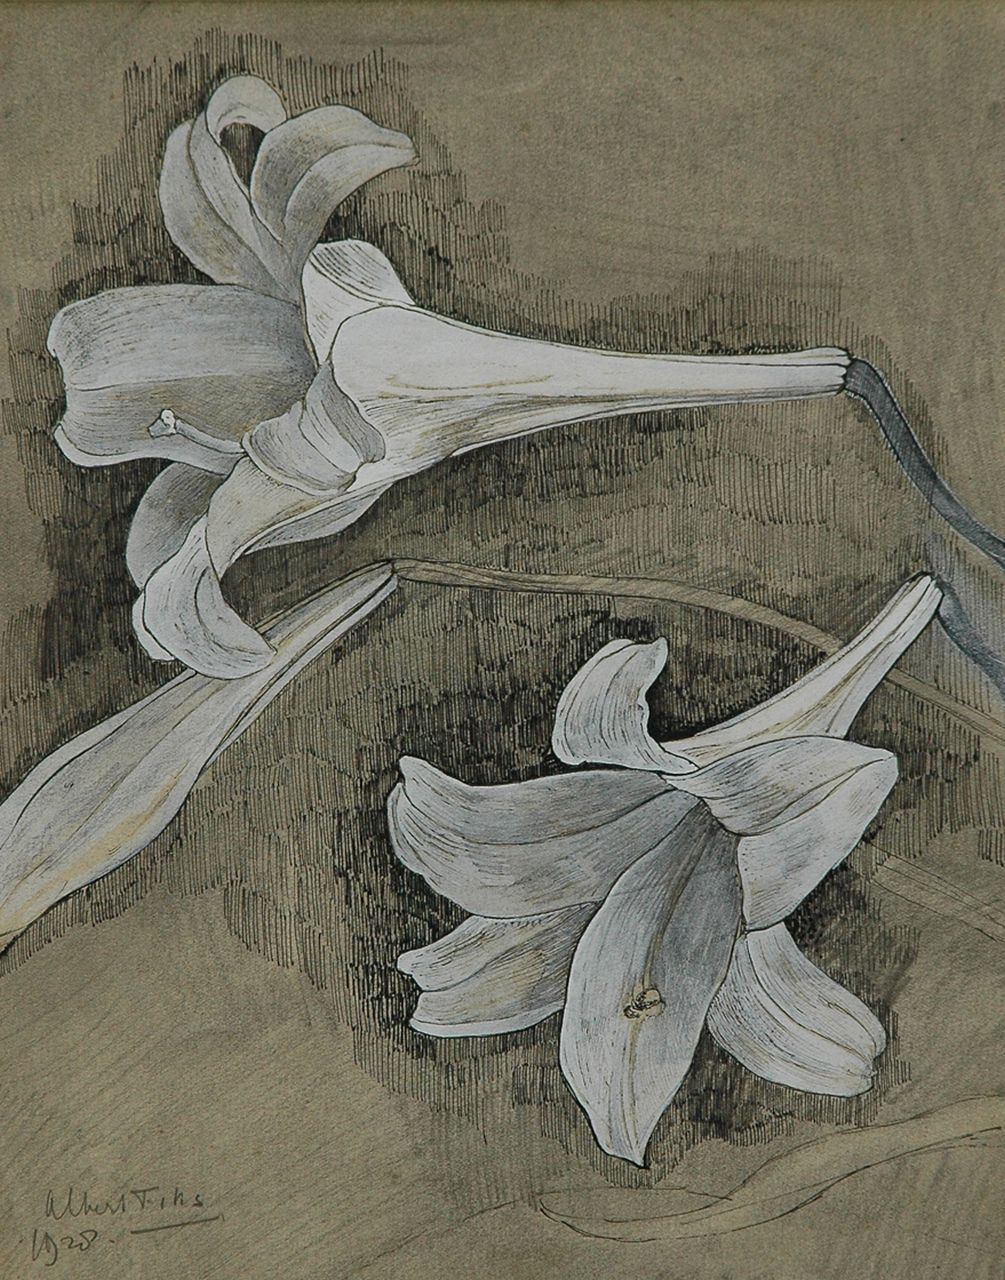 Fiks A.  | Albert Fiks, White lily flowers, pen, ink and gouache on paper 29.5 x 23.4 cm, signed l.l. and dated 1928